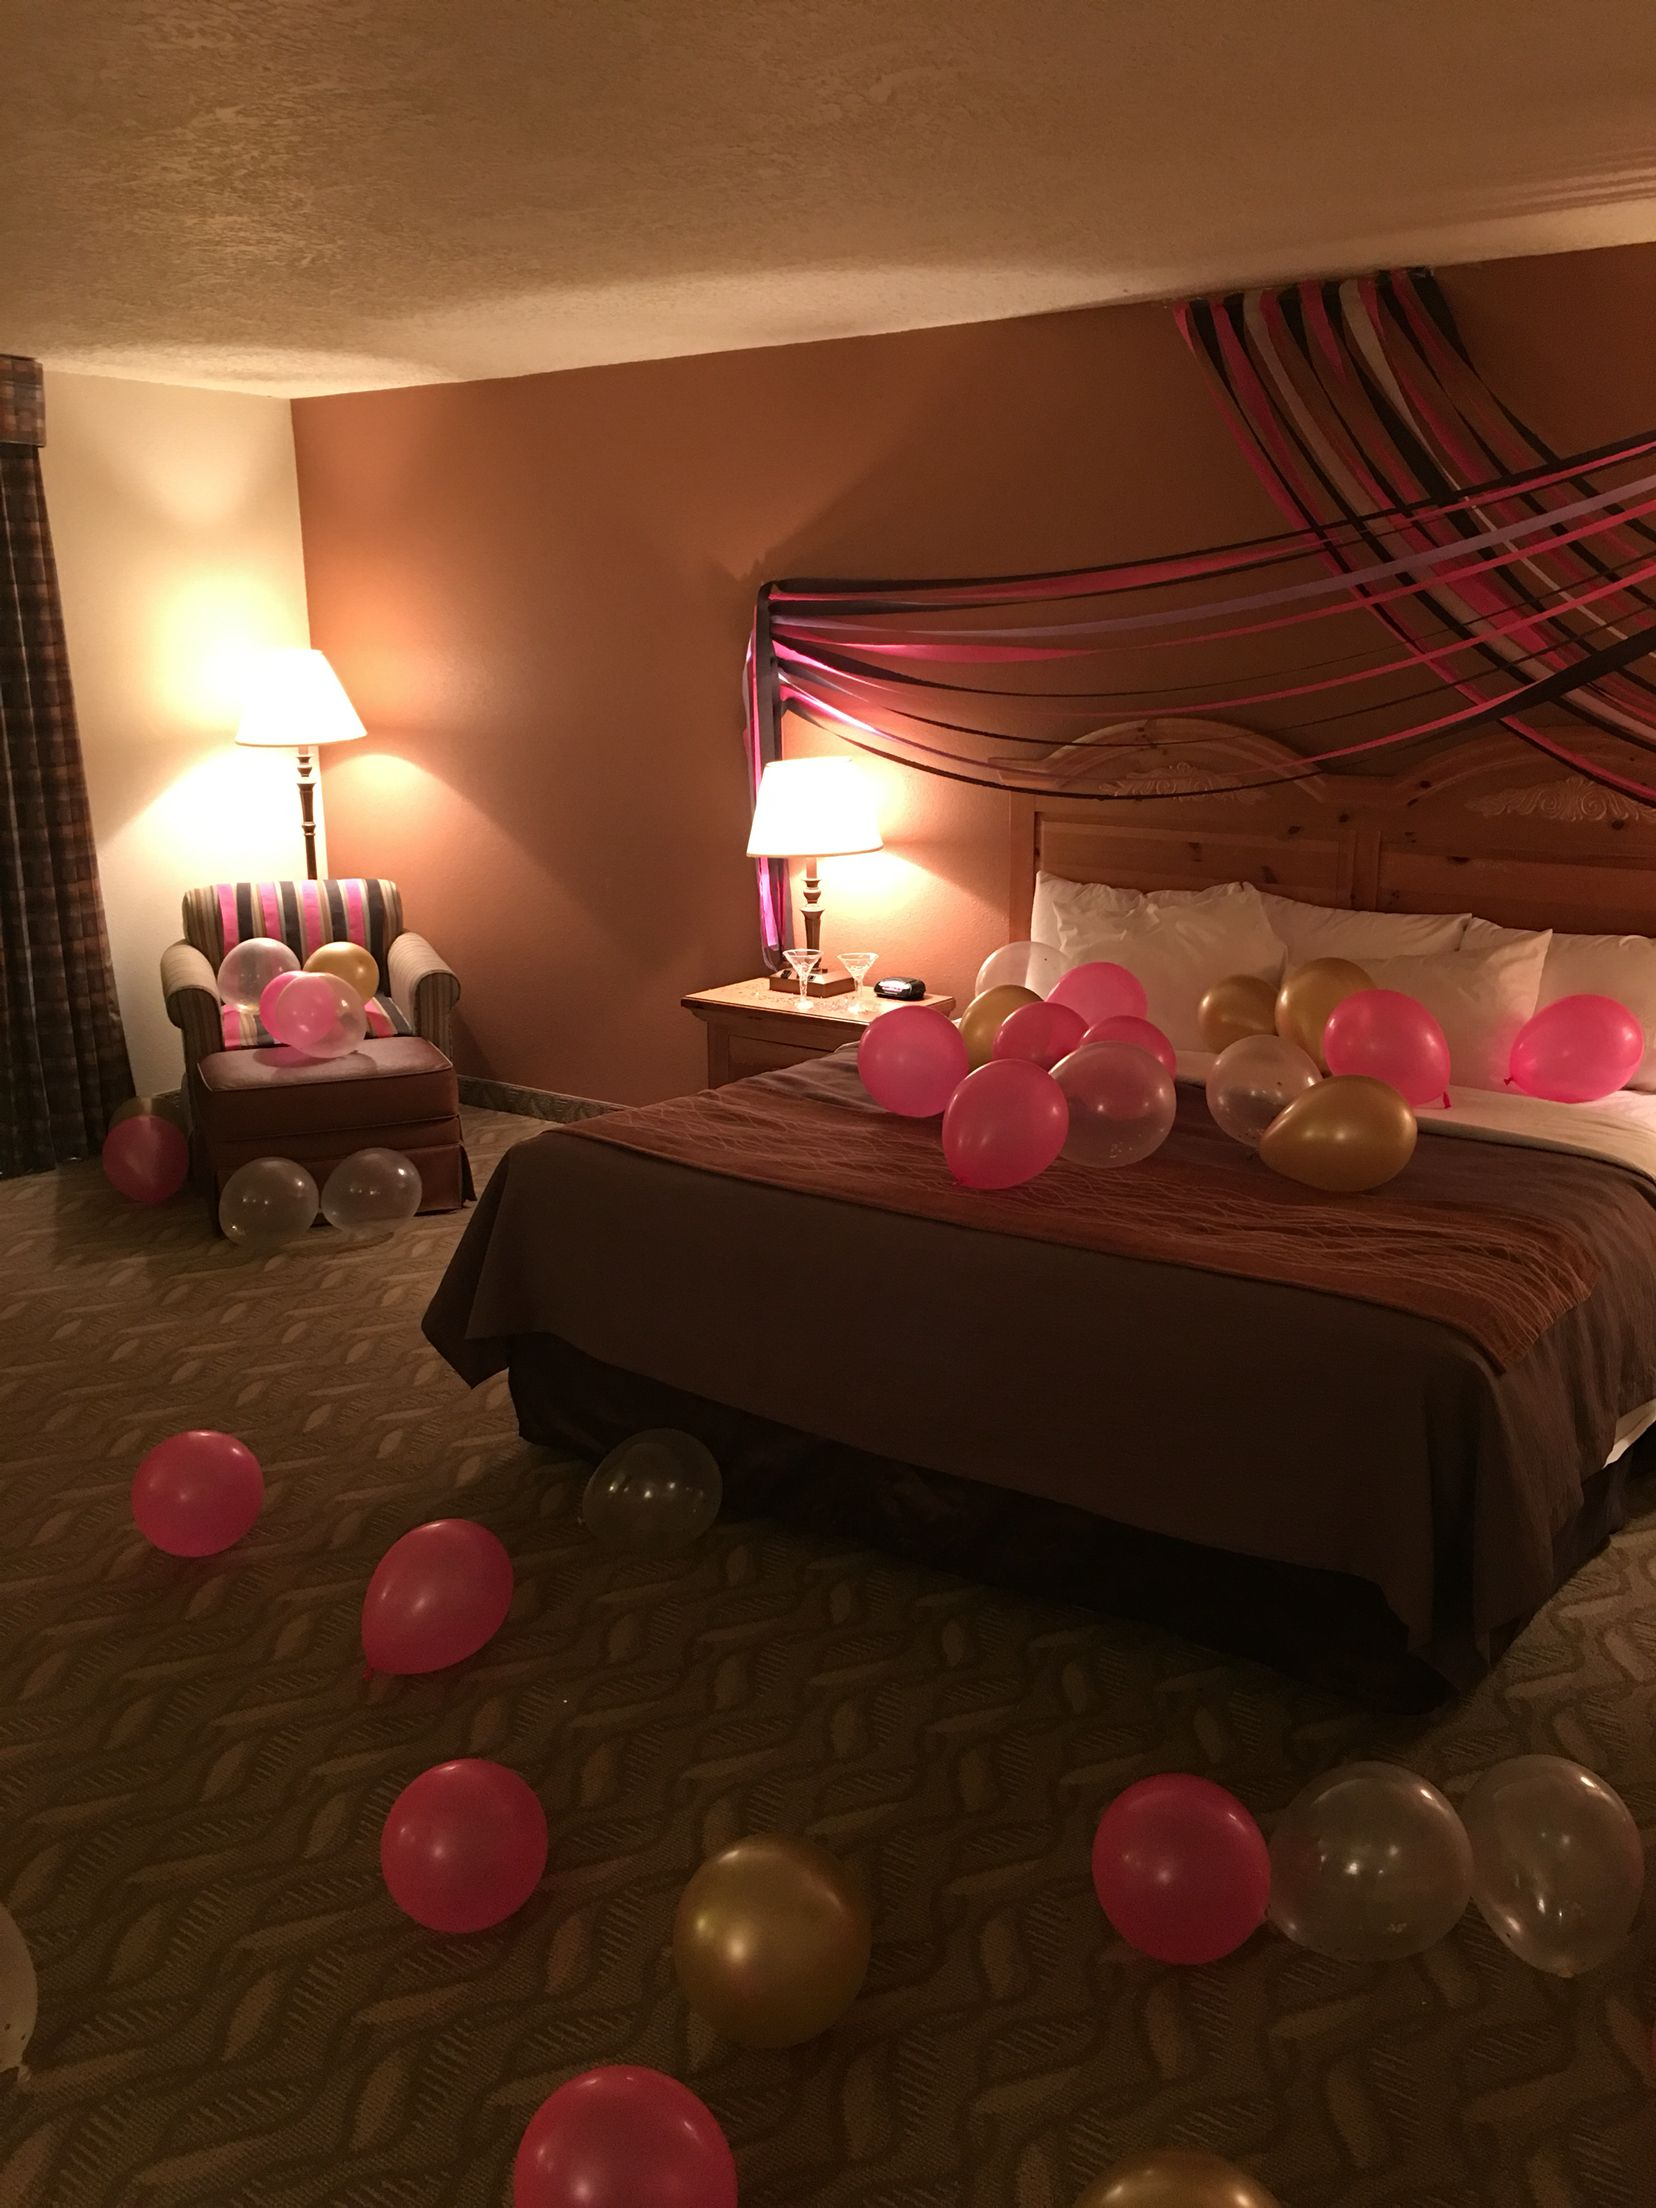 Decoration Hotel Hotel Room Decoration For Birthday 2018 World 39s Best Hotels